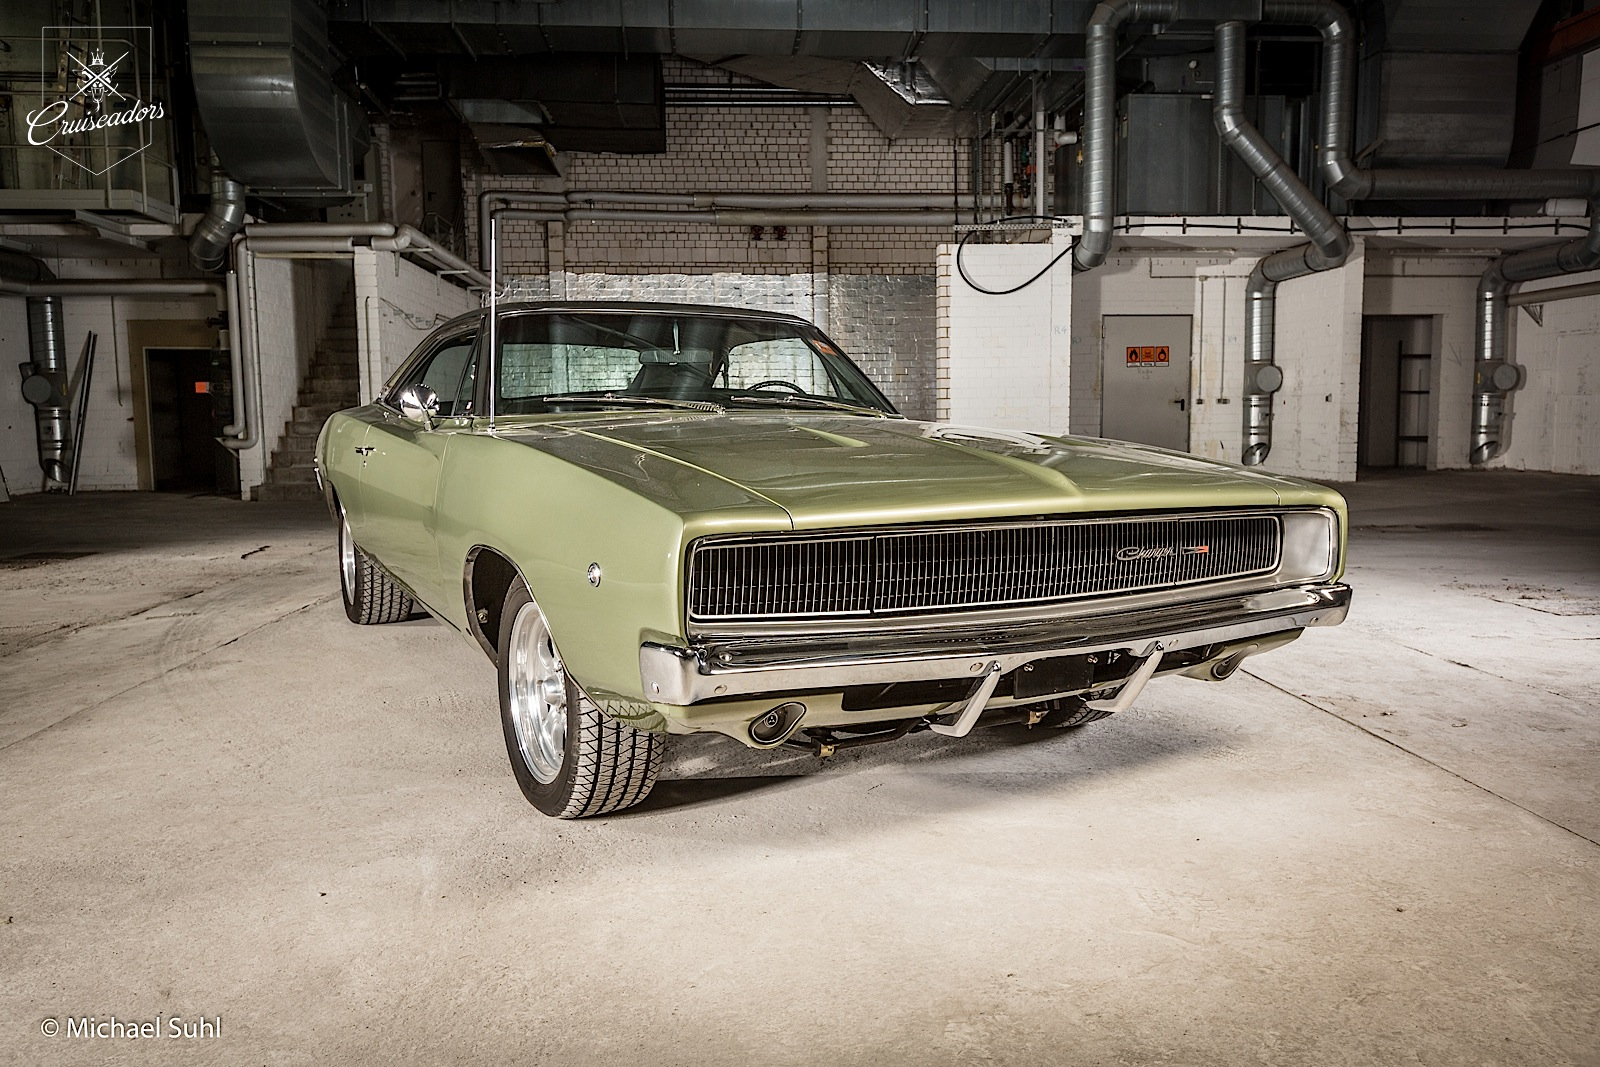 1968 dodge charger mieten kaufen berlin cruiseadors 12. Black Bedroom Furniture Sets. Home Design Ideas